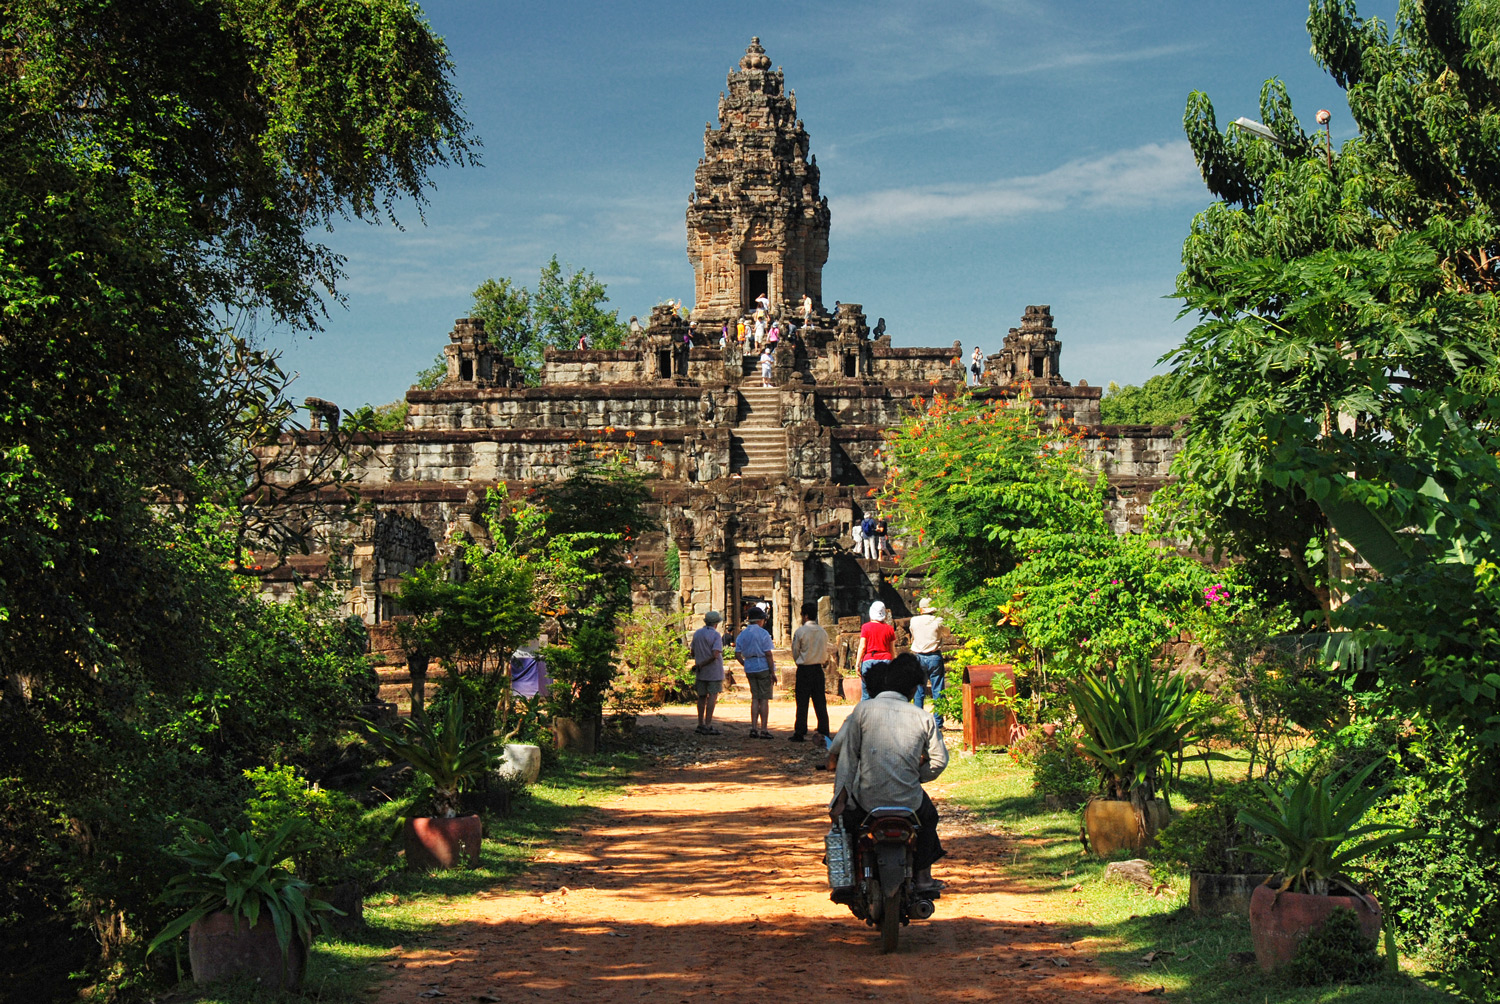 Travels with my Godmother: Uncrowded Angkor Wat